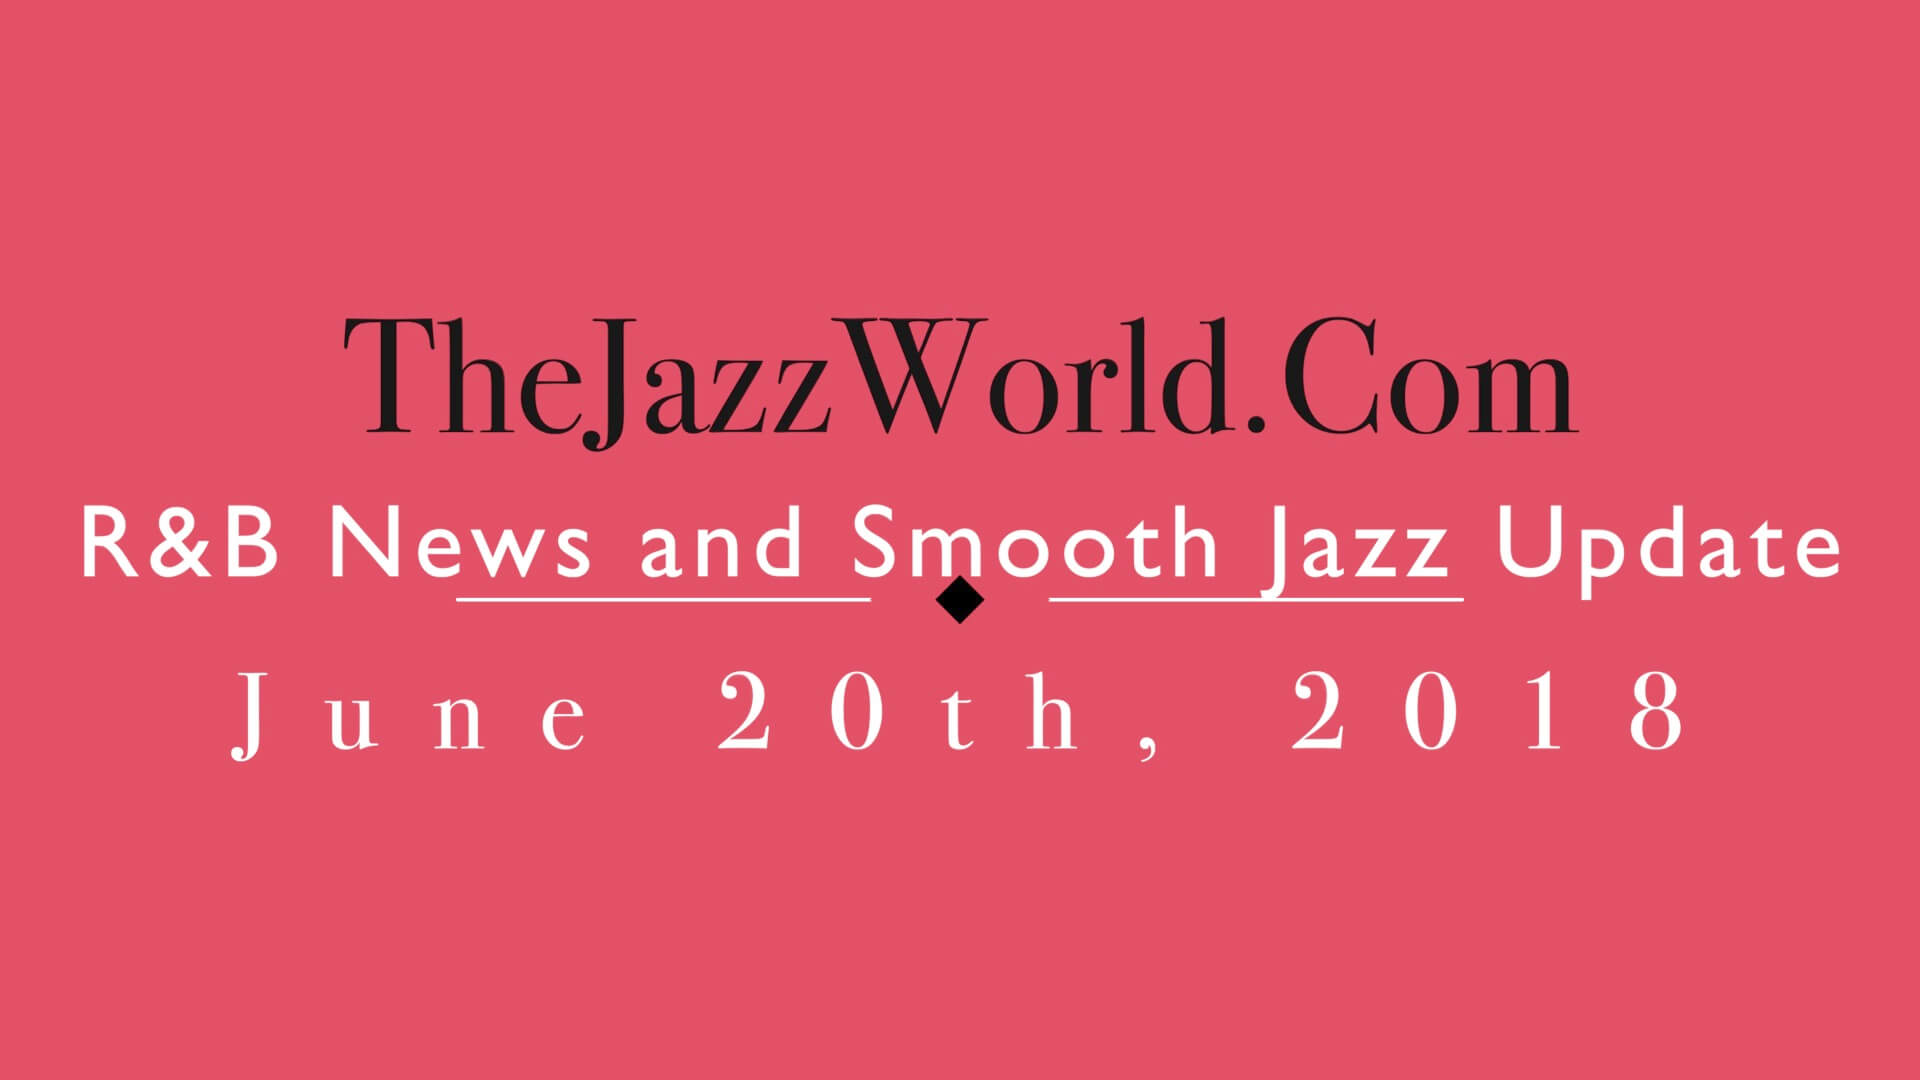 Latest R&B News and Smooth Jazz Update June 20th